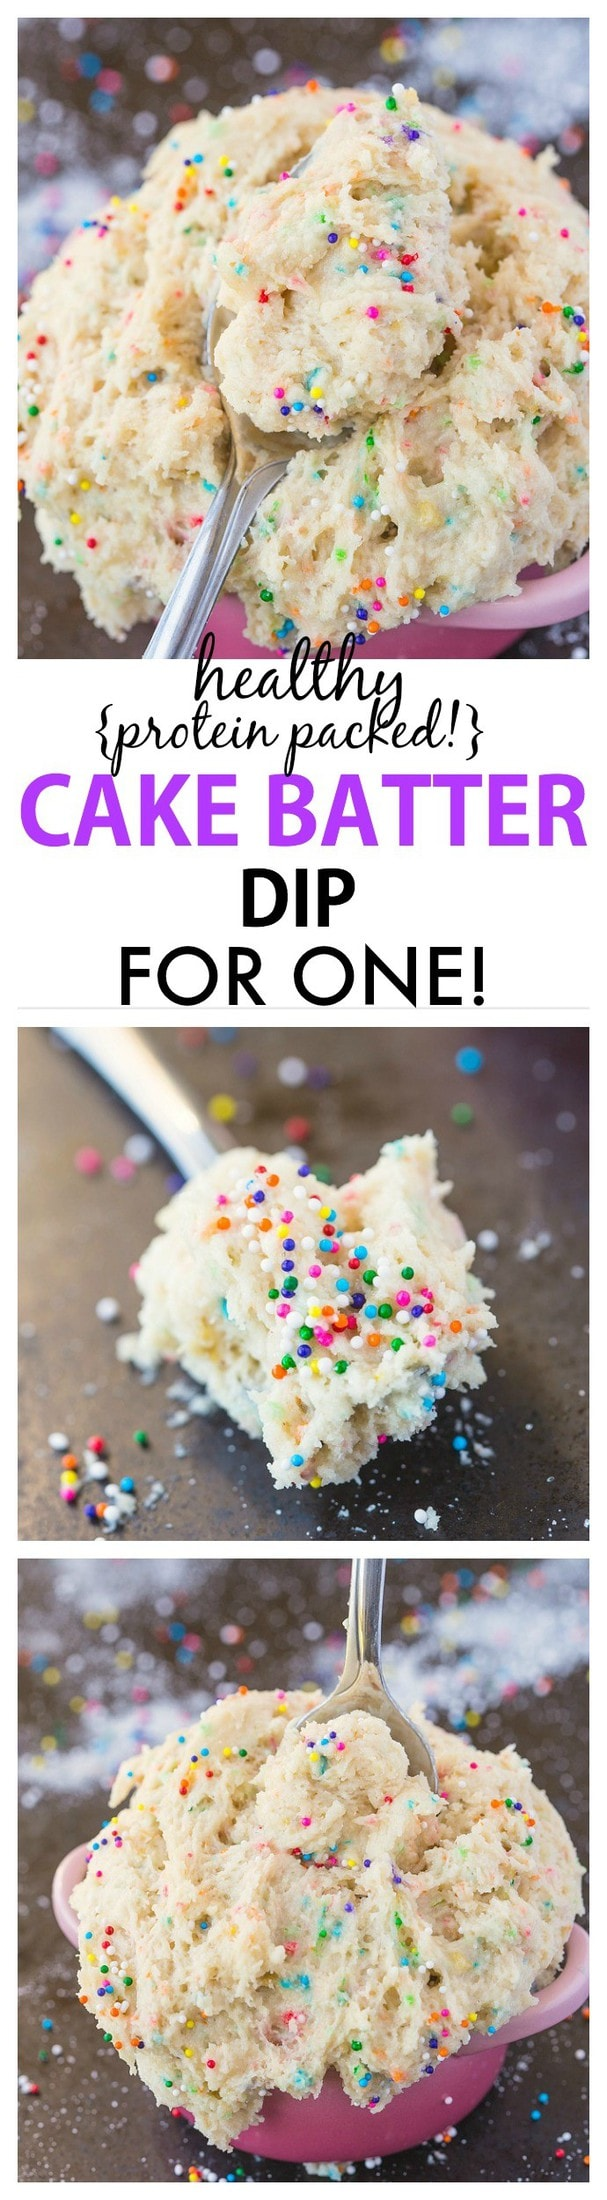 Best Cake Batter Dip Recipe